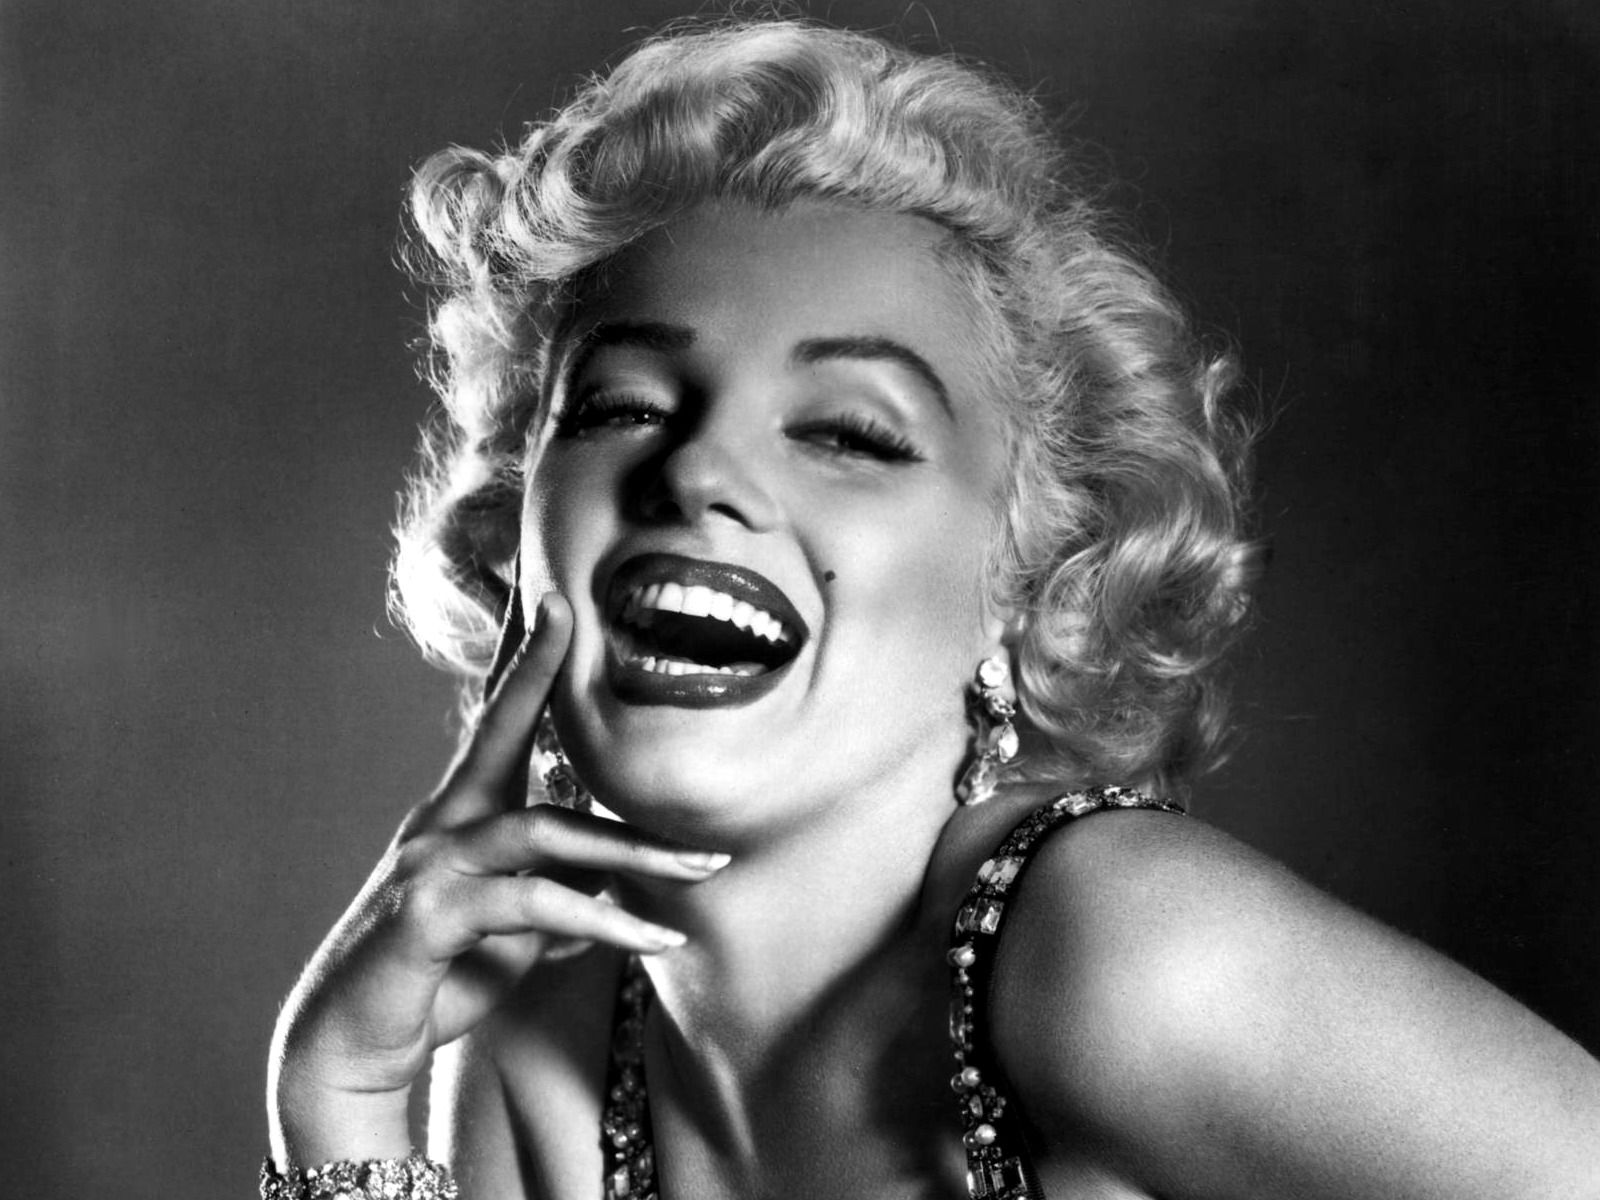 marilyn monroe photo hd celebrity wallpaperhd celebrity wallpaper marilyn monroe pinterest. Black Bedroom Furniture Sets. Home Design Ideas